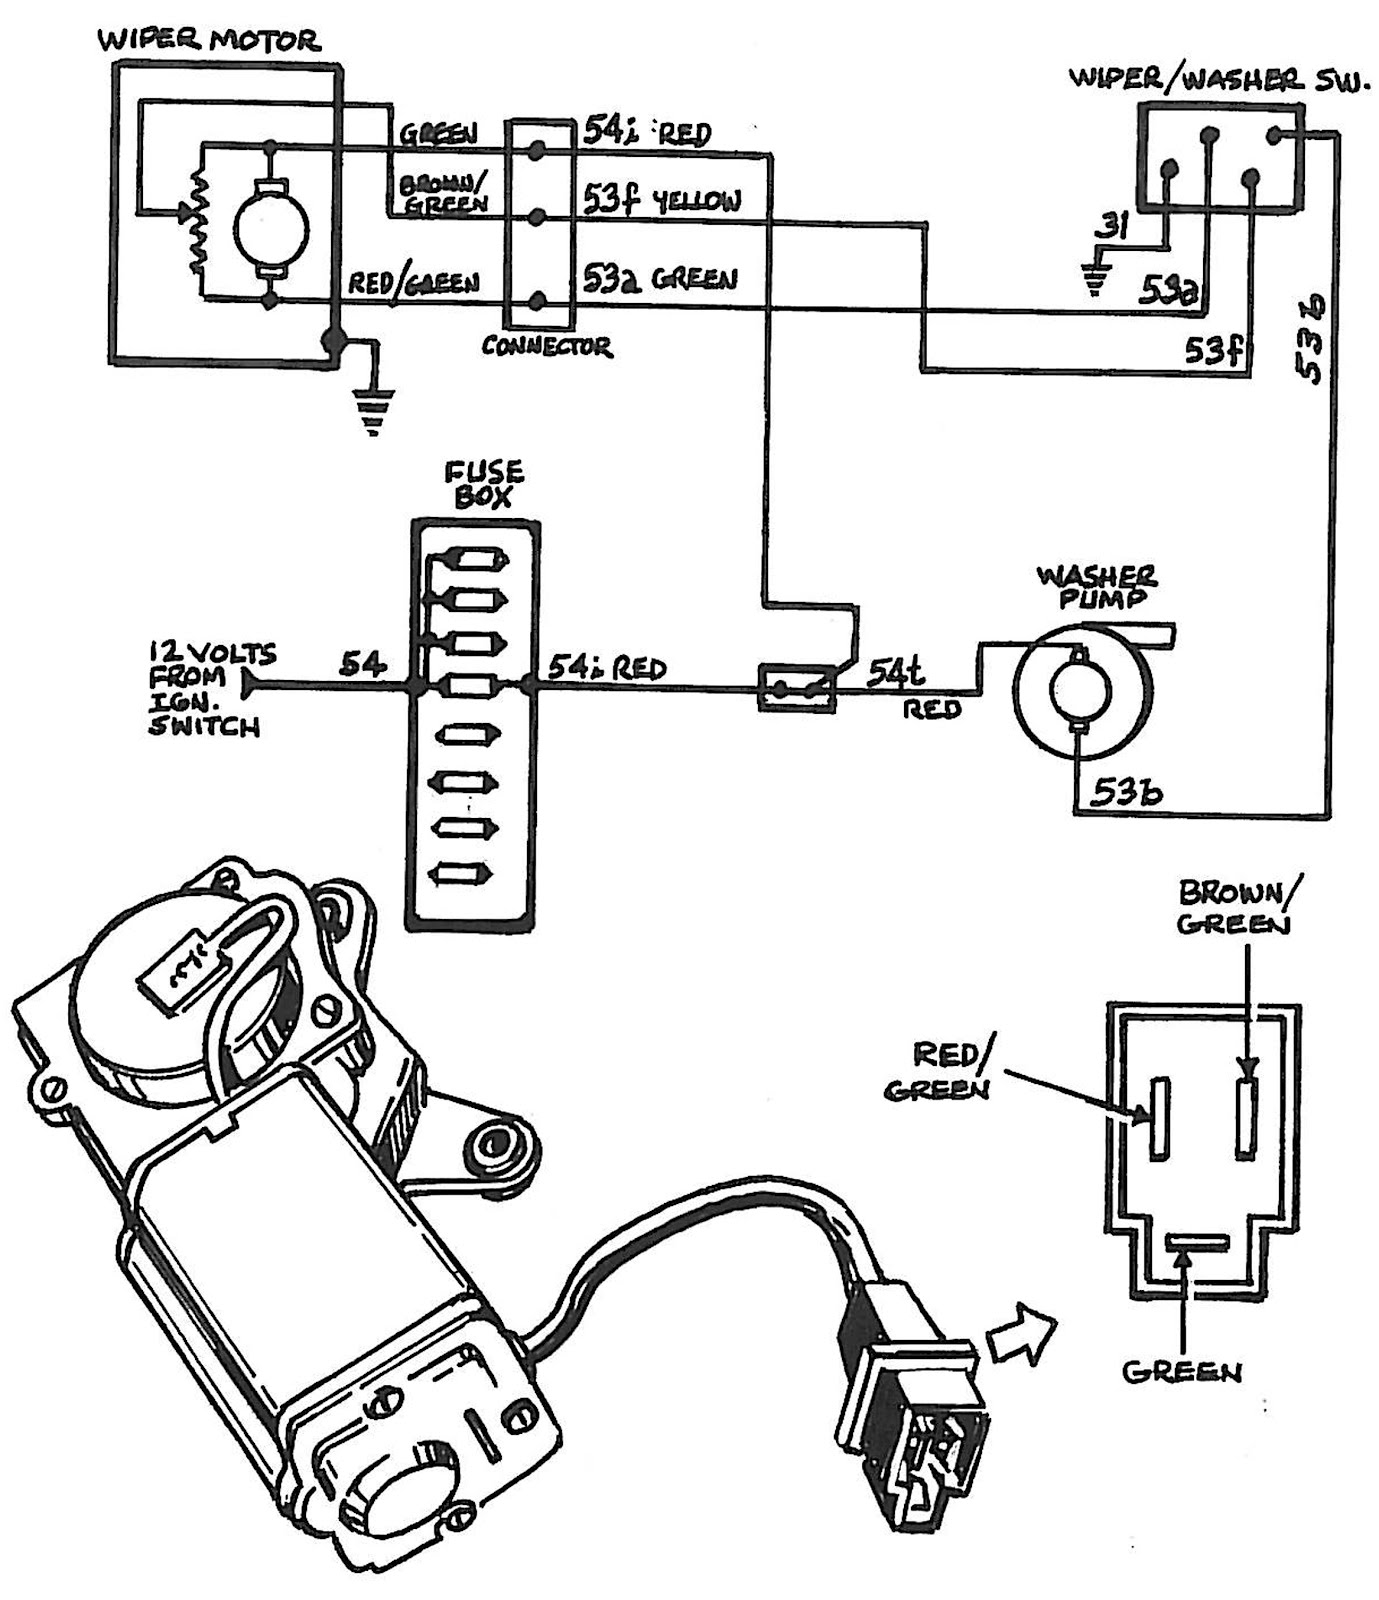 hight resolution of ford wiper motor wiring diagram wiring diagram chevy wiper motor wiring diagram chevy wiper motor wiring